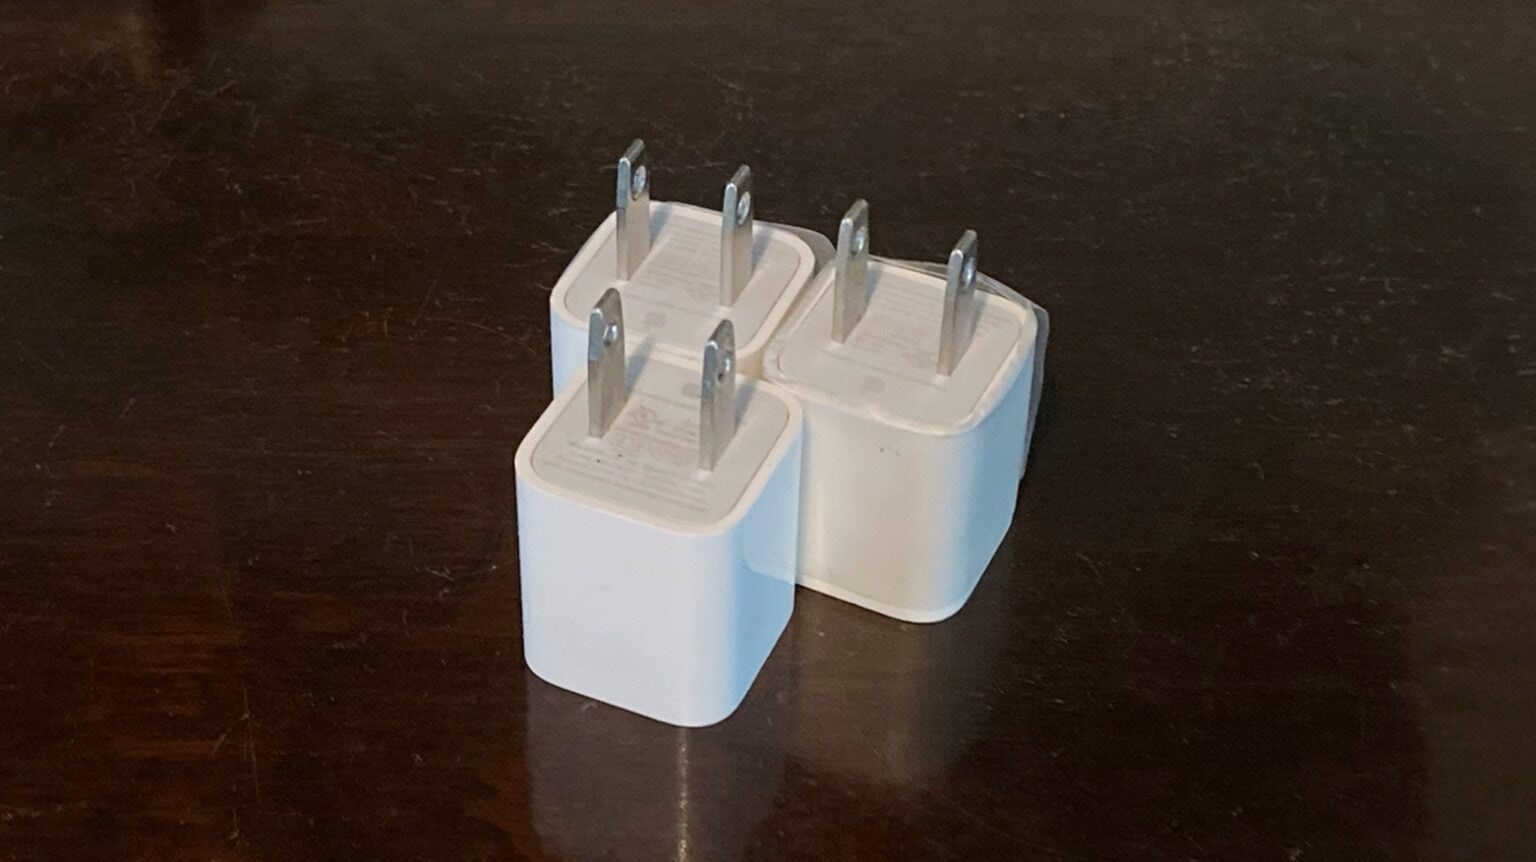 Does anyone really need another iPhone charger?